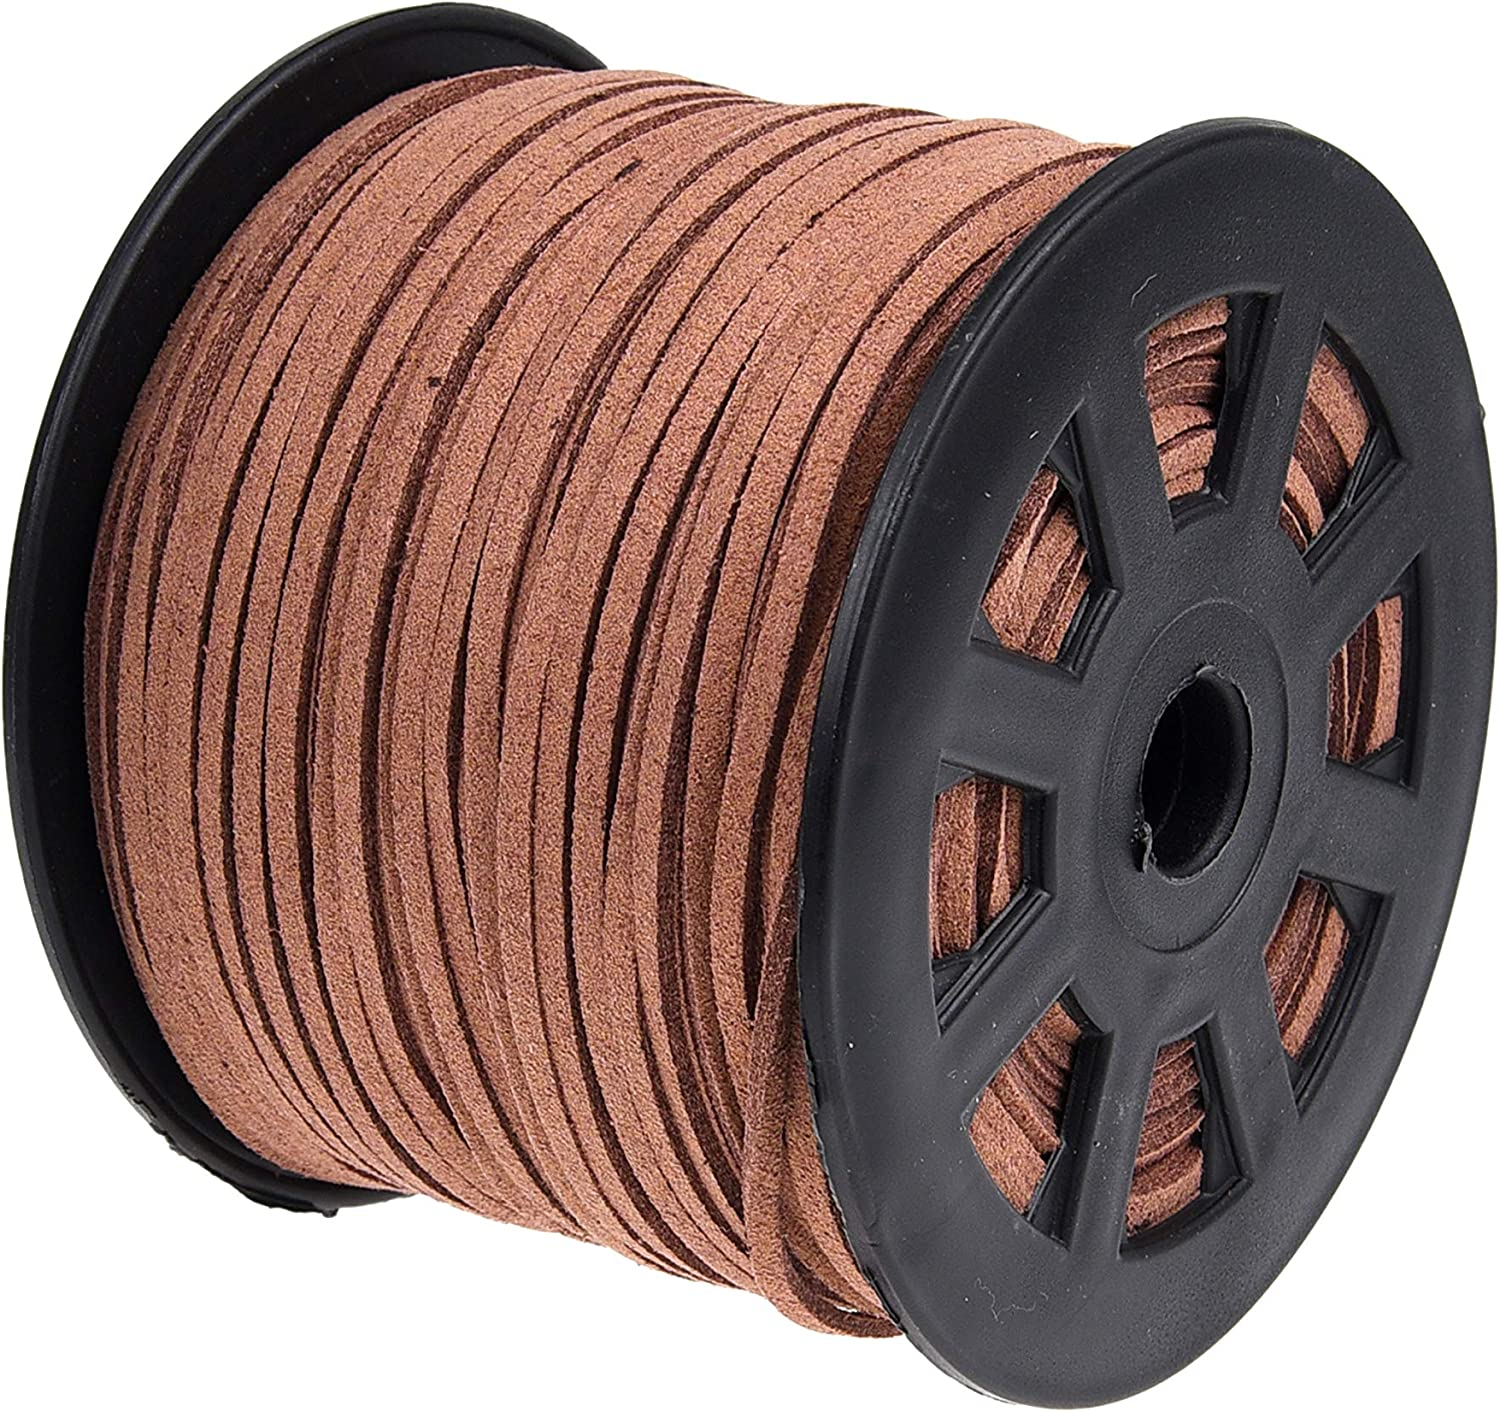 Kare Kind Mail order cheap 100 Yards Suede Cord - Lace L 1.5 mm x 2.6 Denver Mall Faux